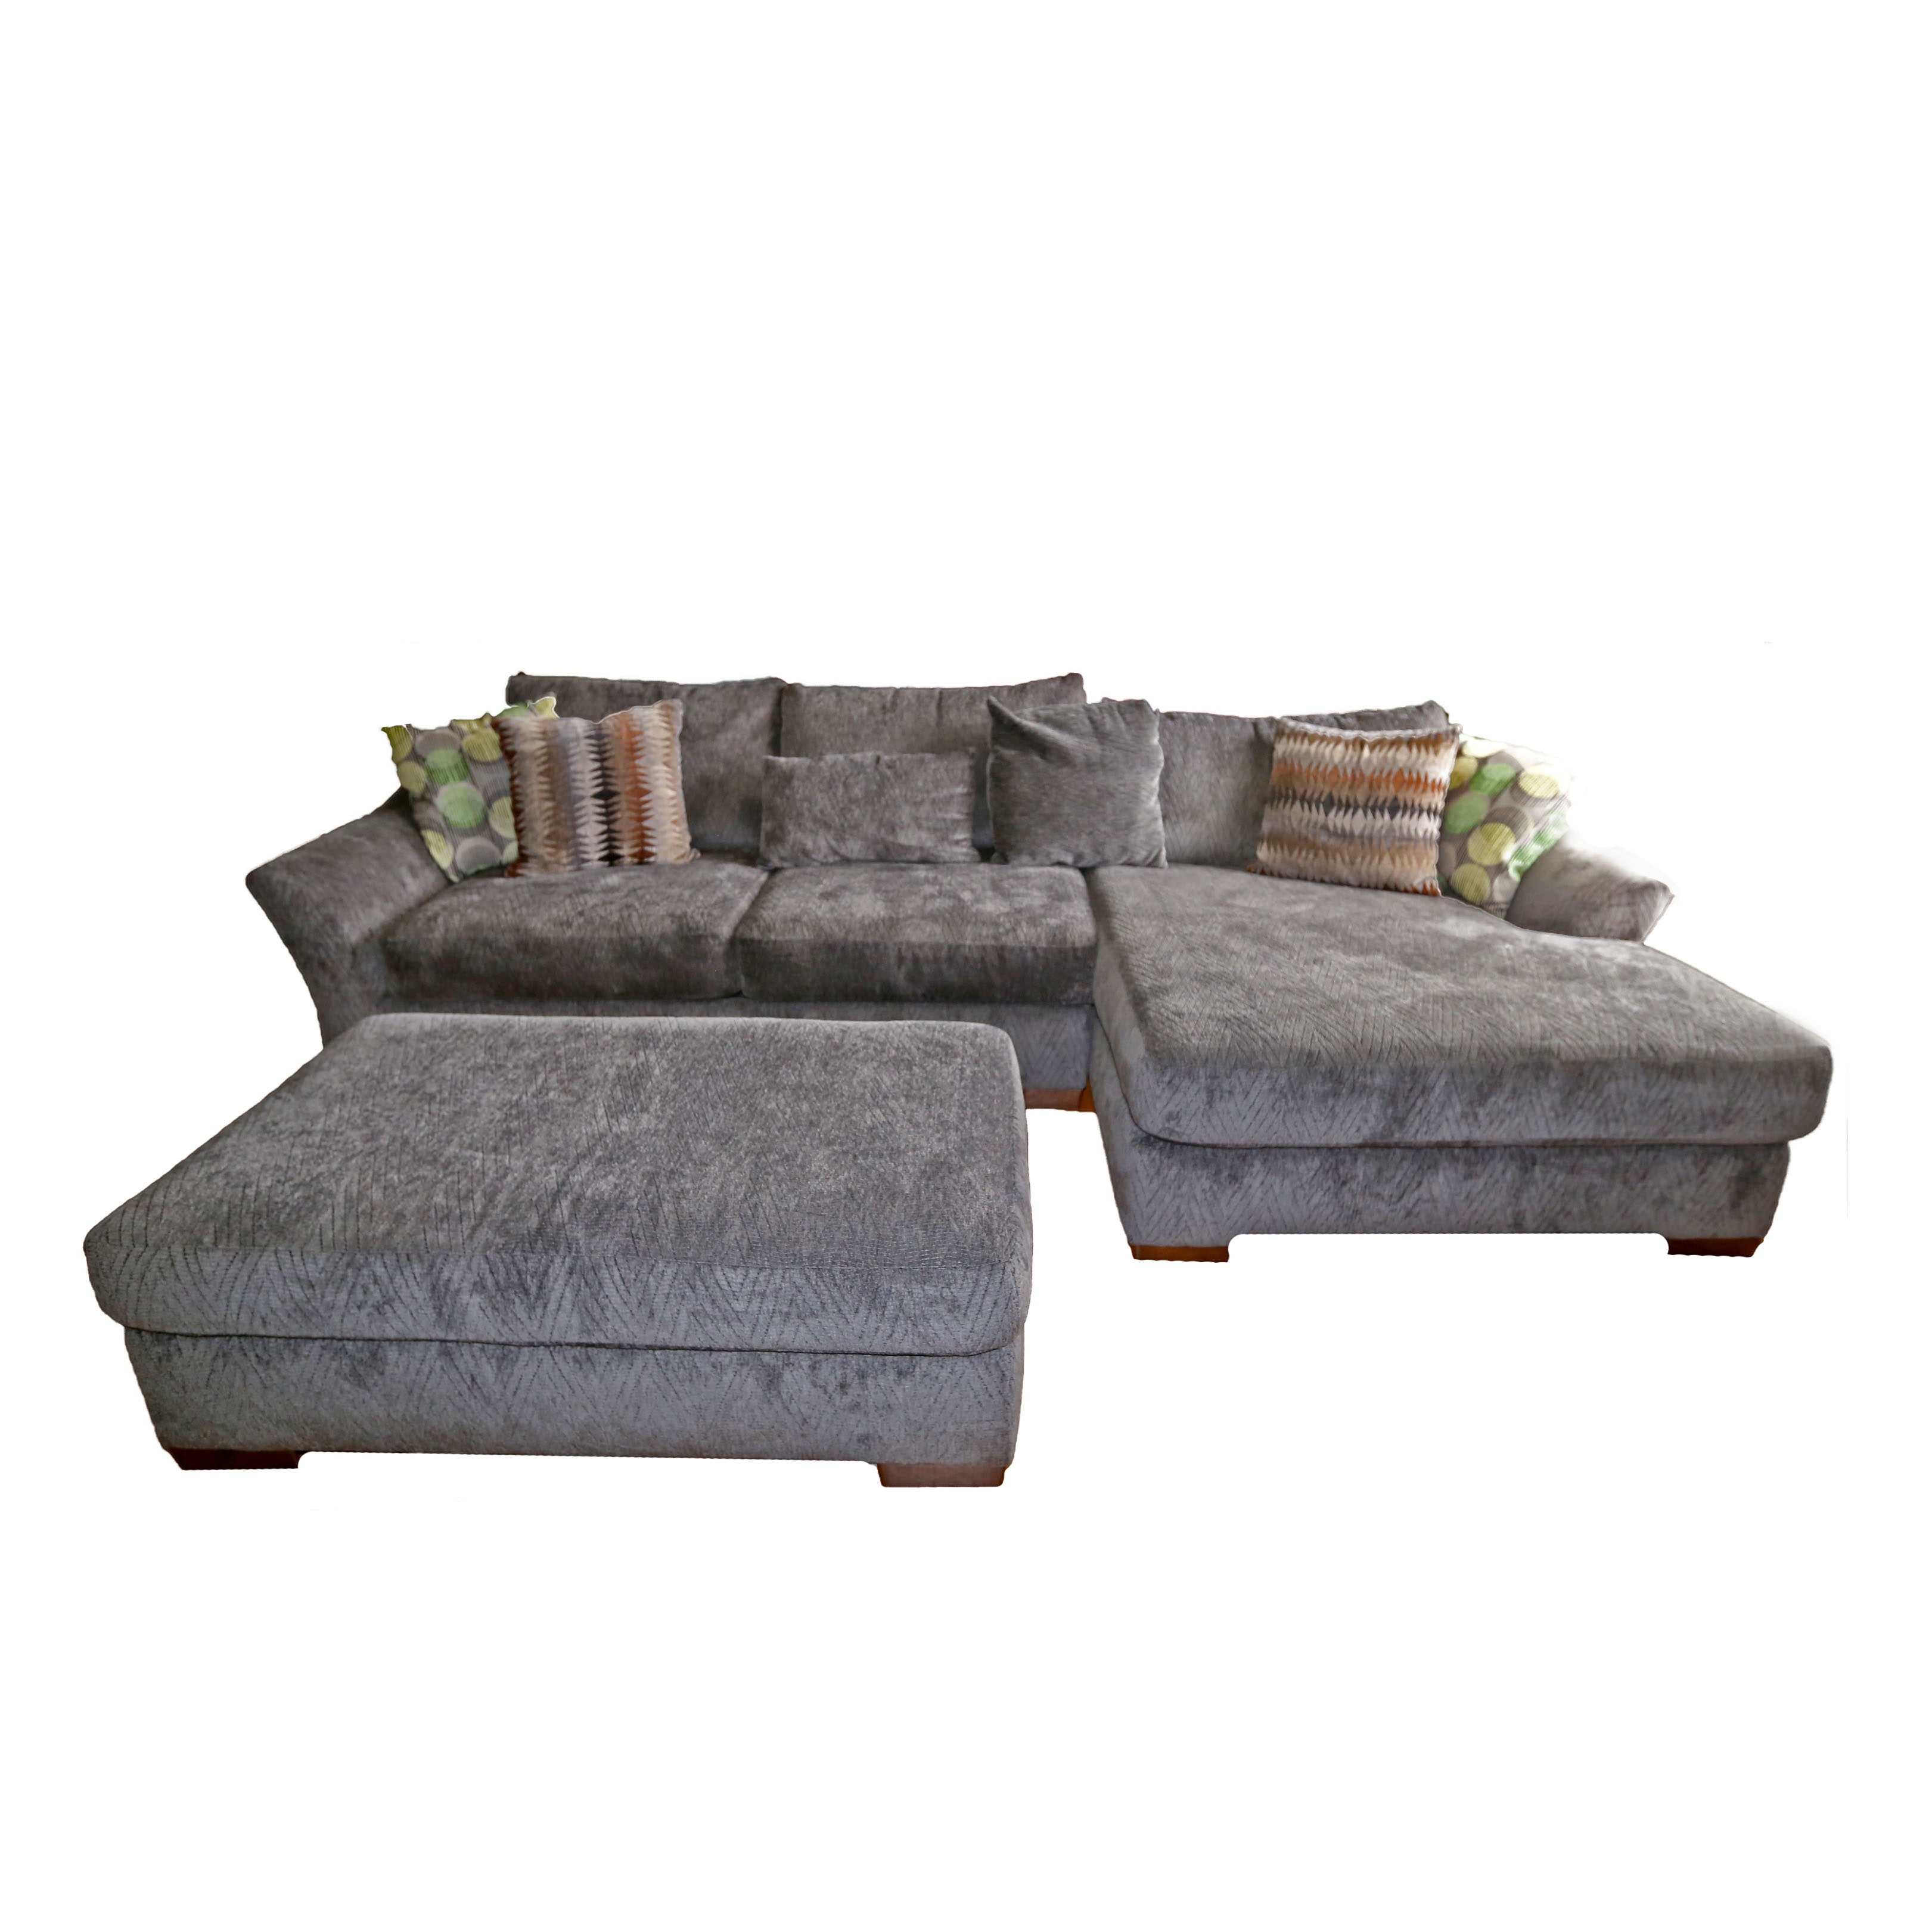 Bluish Gray Sectional Sofa And Ottoman By Kroehler ...